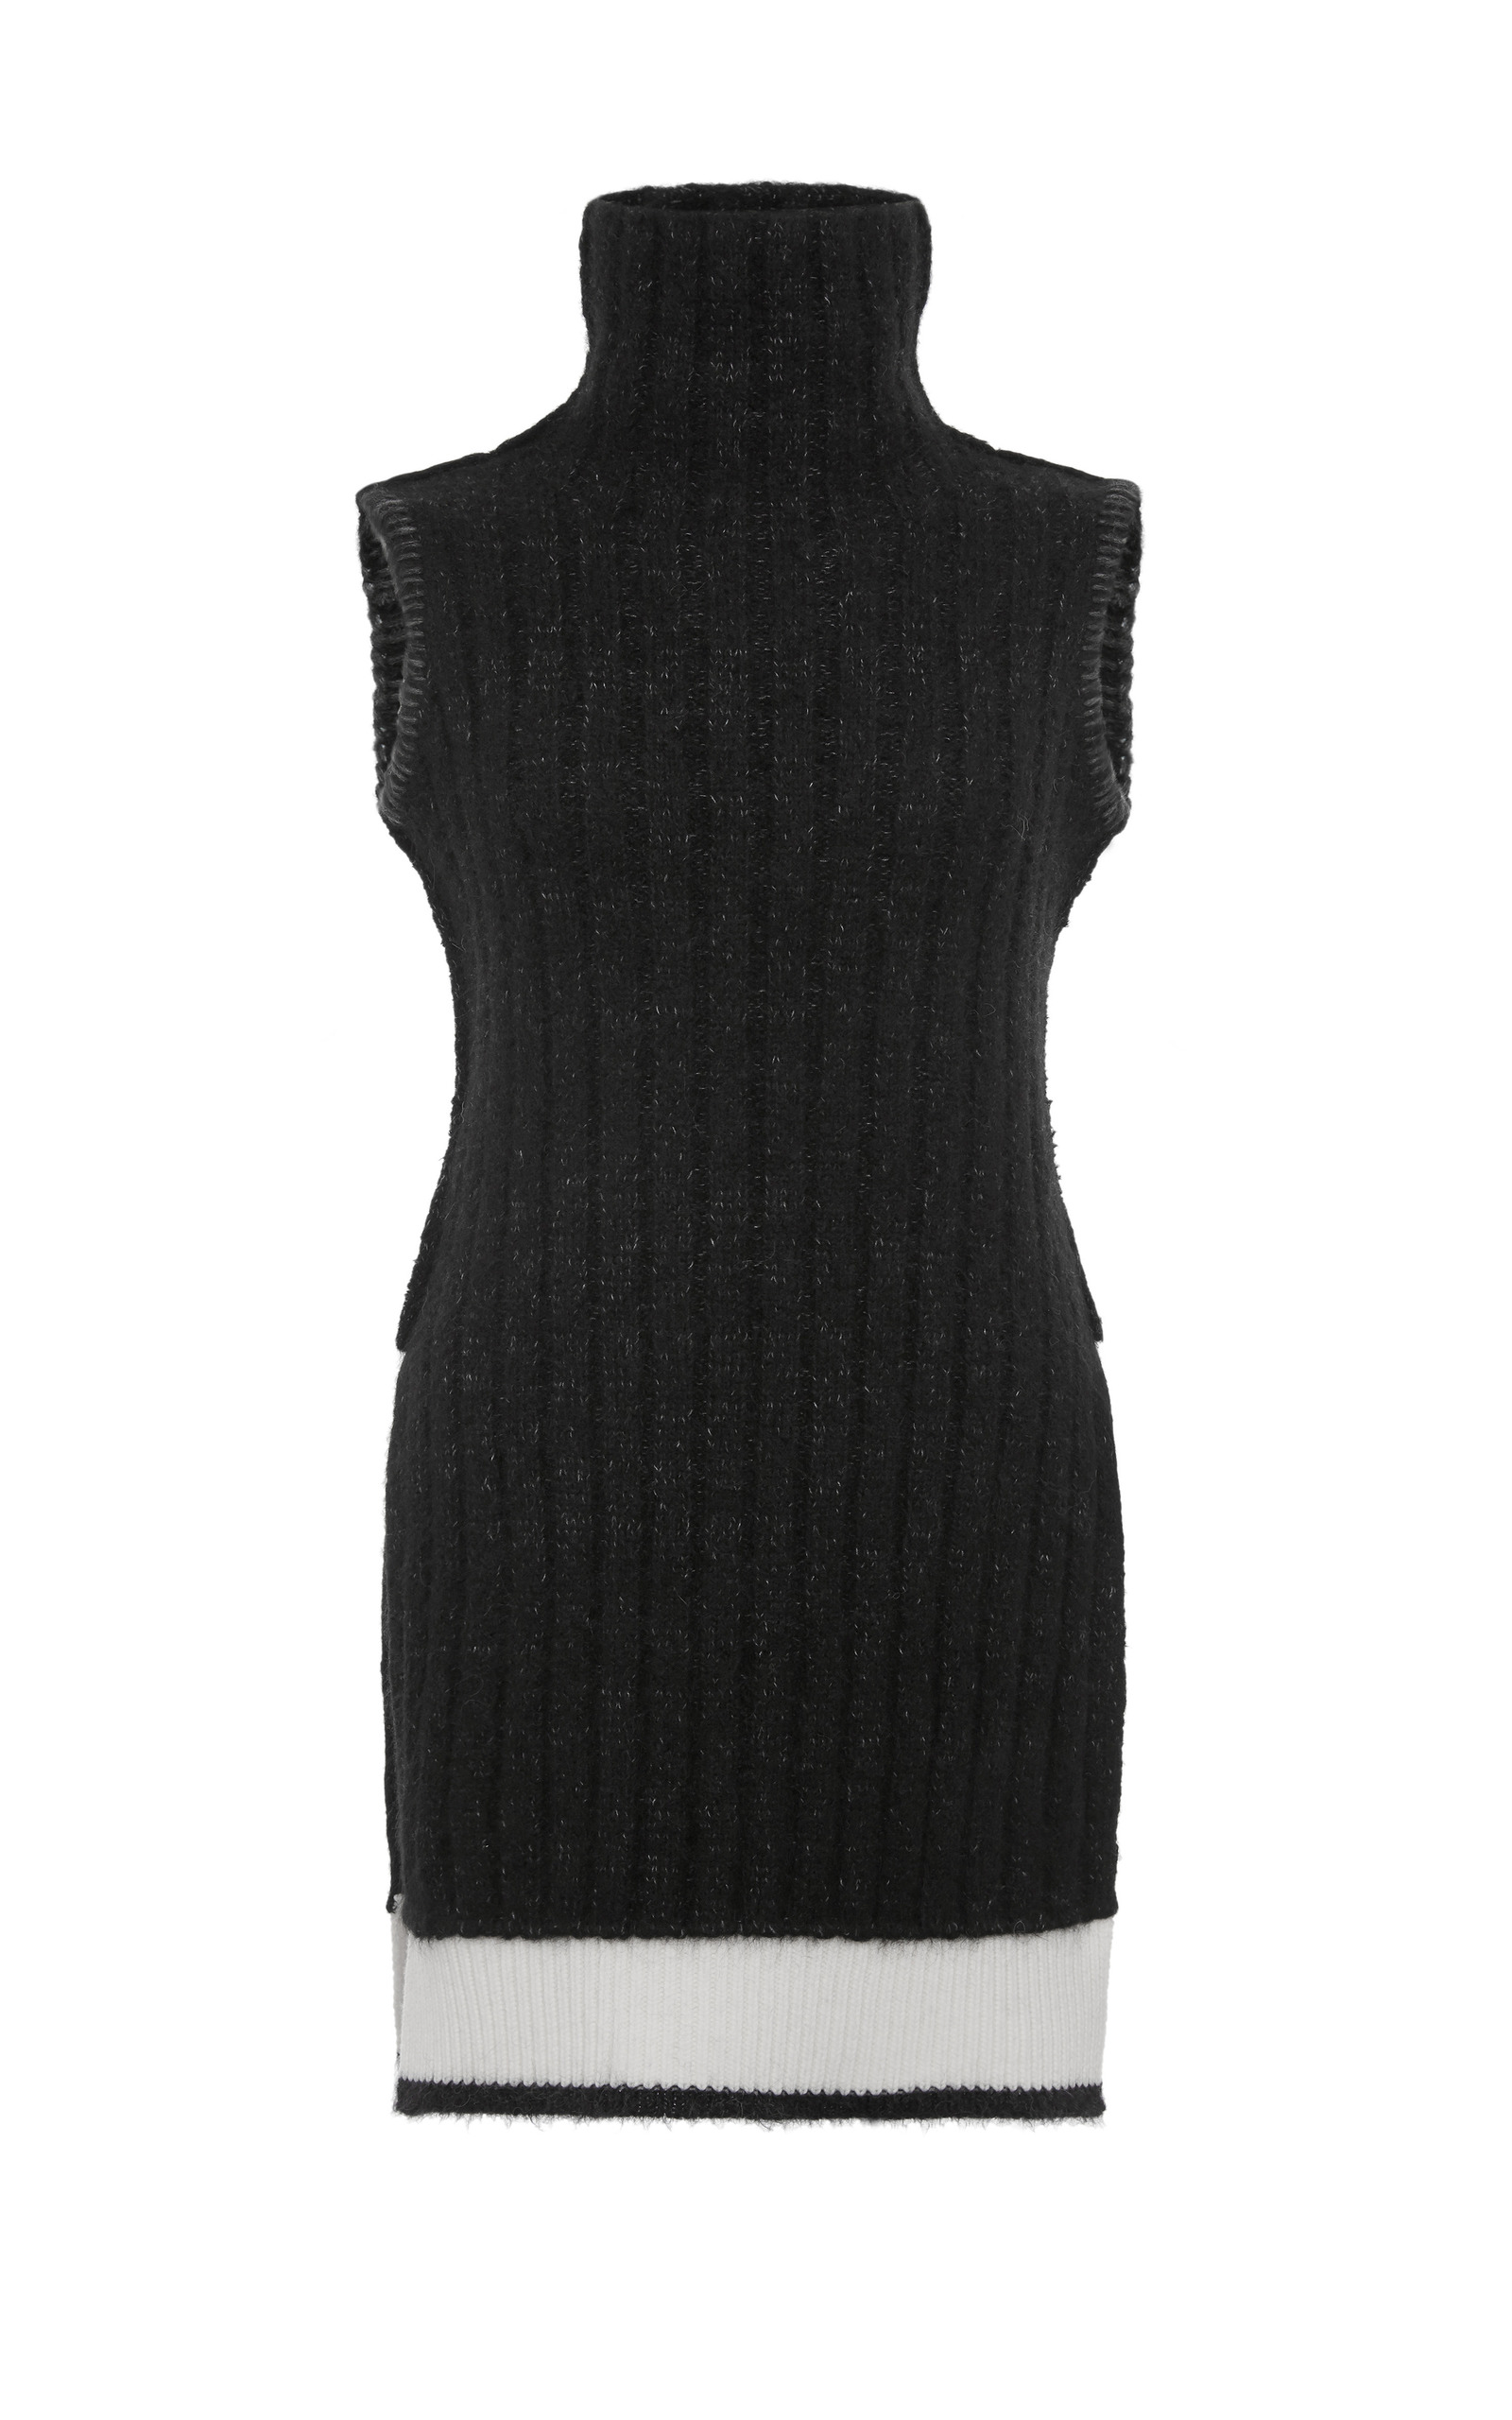 d30c637b731b24 Calvin Klein CollectionBlack And White Ribbed Cashmere Turtleneck  Sleeveless Top. CLOSE. Loading